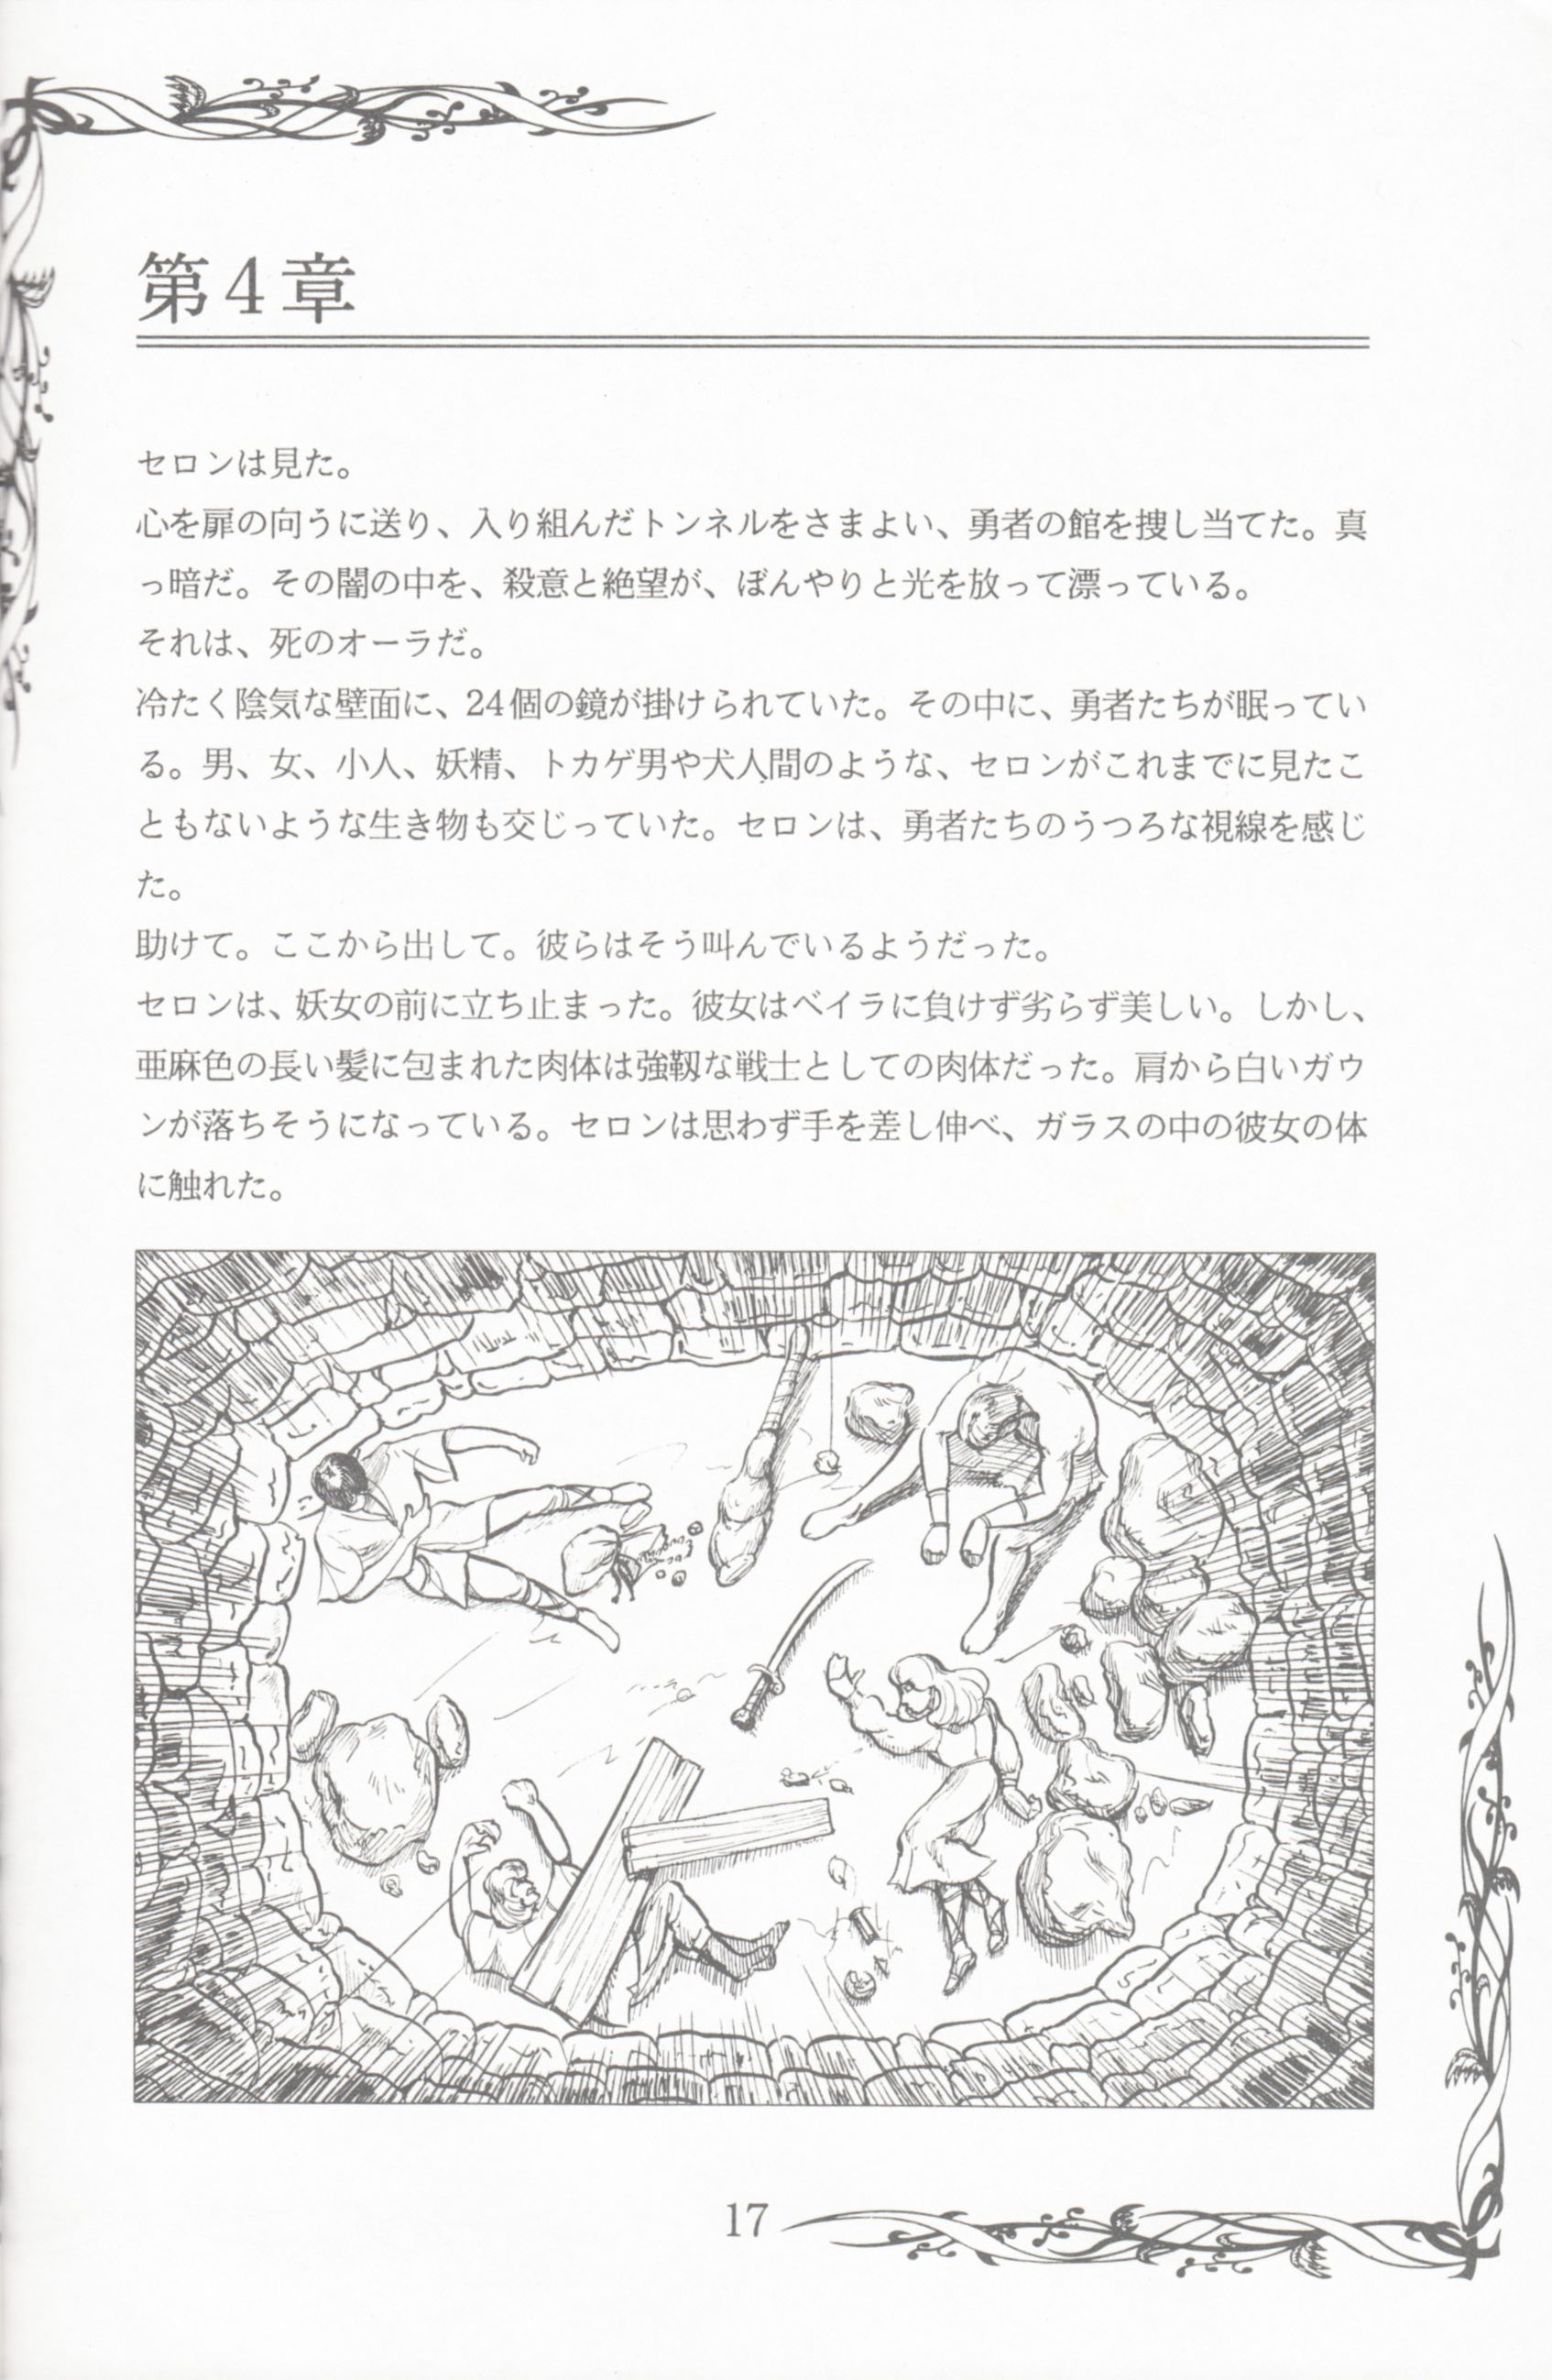 Game - Dungeon Master - JP - PC-9801 - 5.25-inch - Manual - Page 019 - Scan